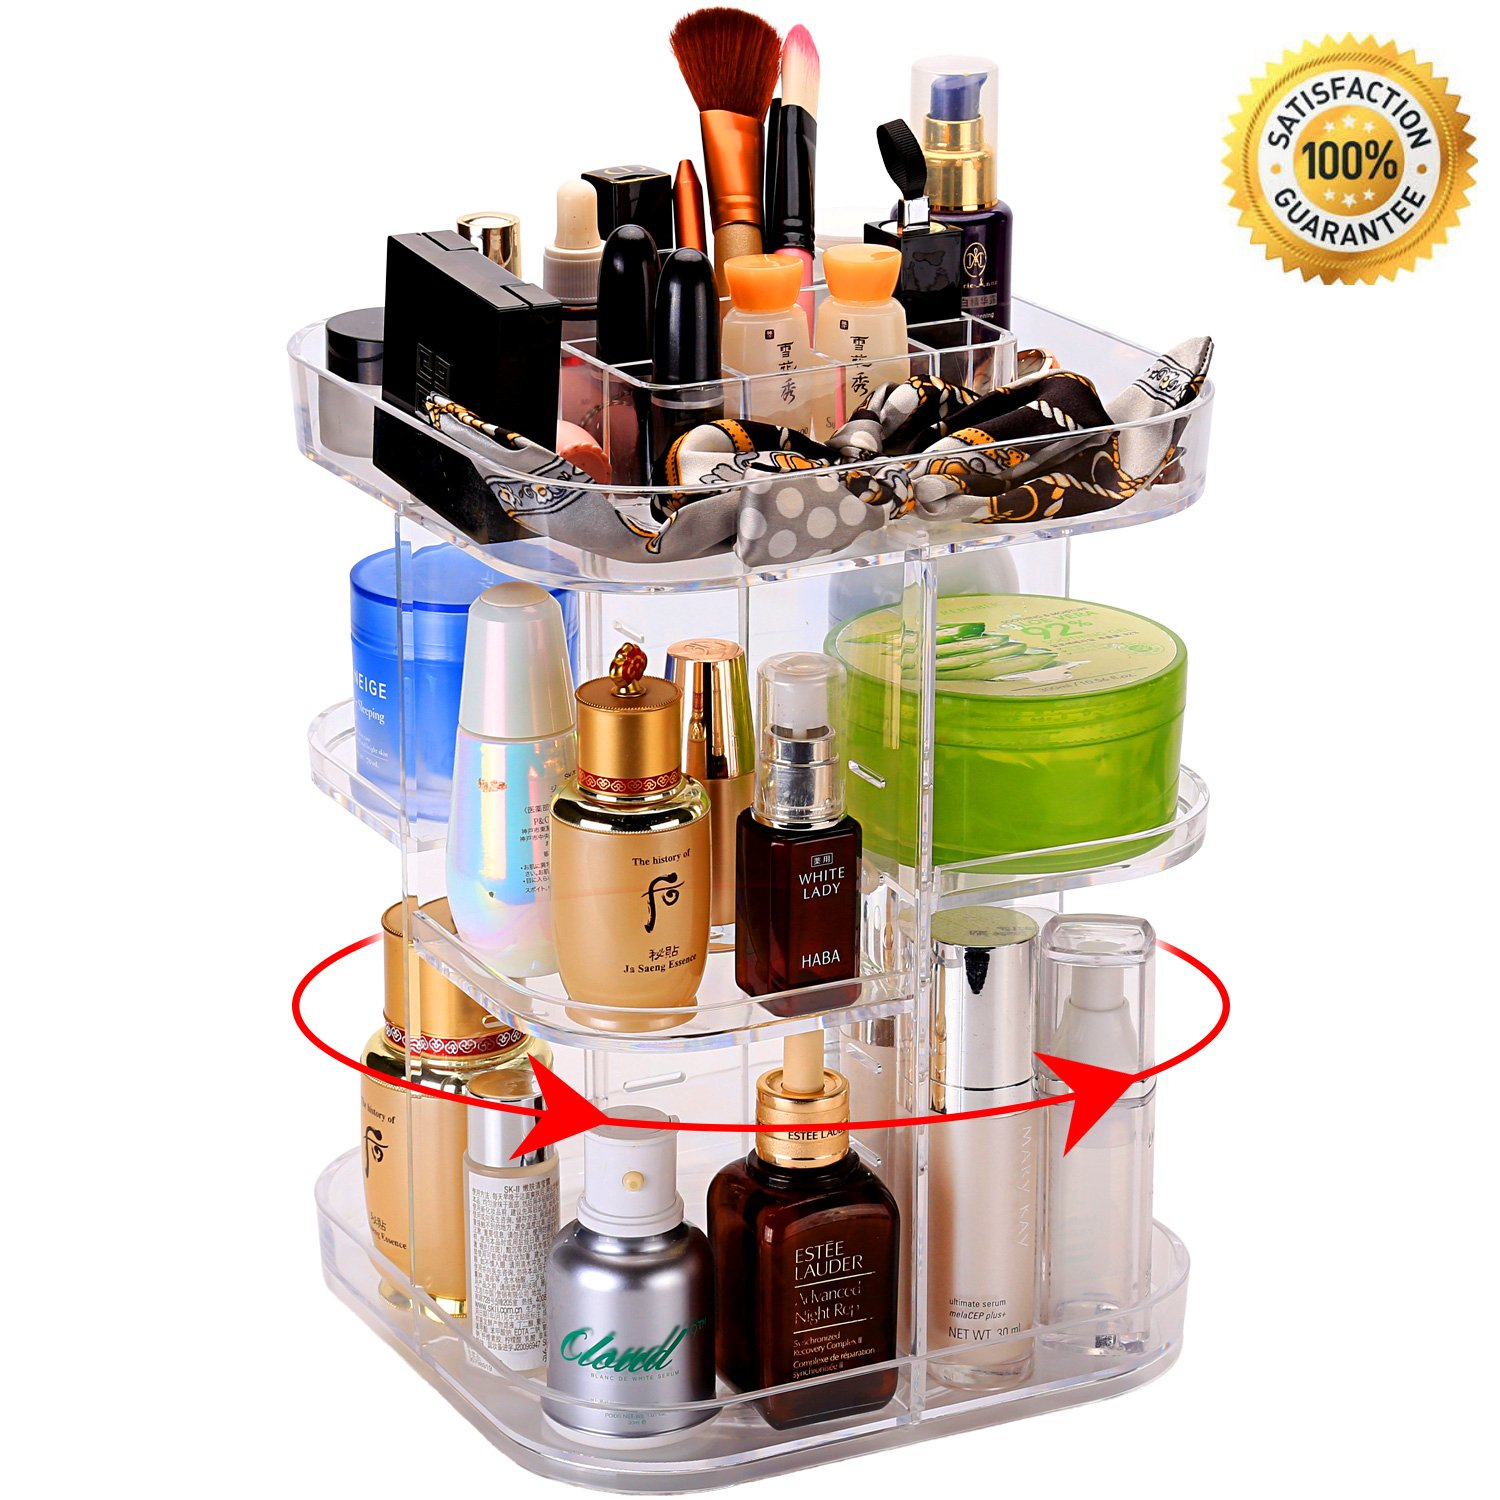 Rotating Makeup Organizer, 360 Degree Rotating Cosmetic Storage Box, Makeup Holder Acrylic Vanity Organizer Box with DIY Adjustable Tray, Large Capacity, Space Saving, Fits Toner, Creams, Makeup Brushes, Lipsticks ( Transparent ) Weiding